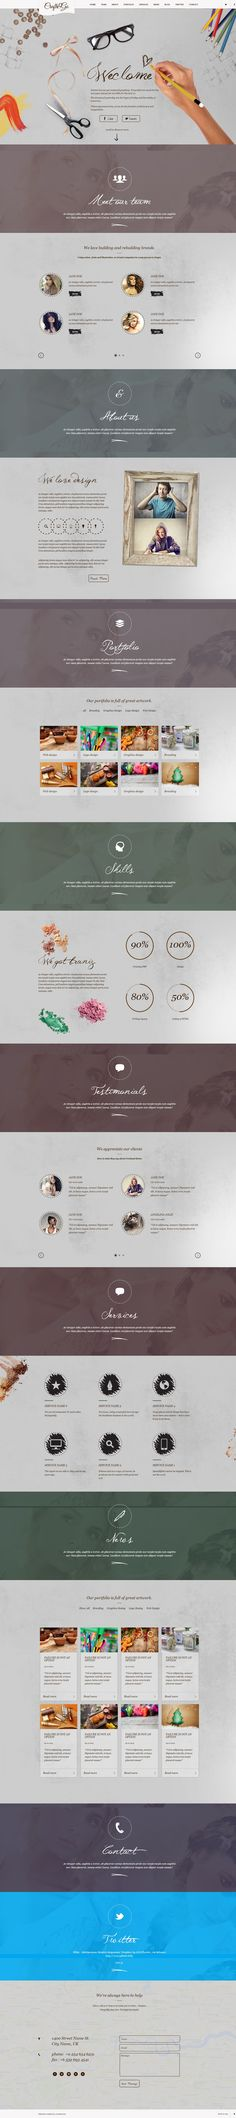 Craft&Go - Parallax OnePage Modern WordPress Theme http://themeforest.net/item/craftgo-parallax-onepage-modern-wordpress-theme/6073928?ref=wpaw #wordpress #web #design